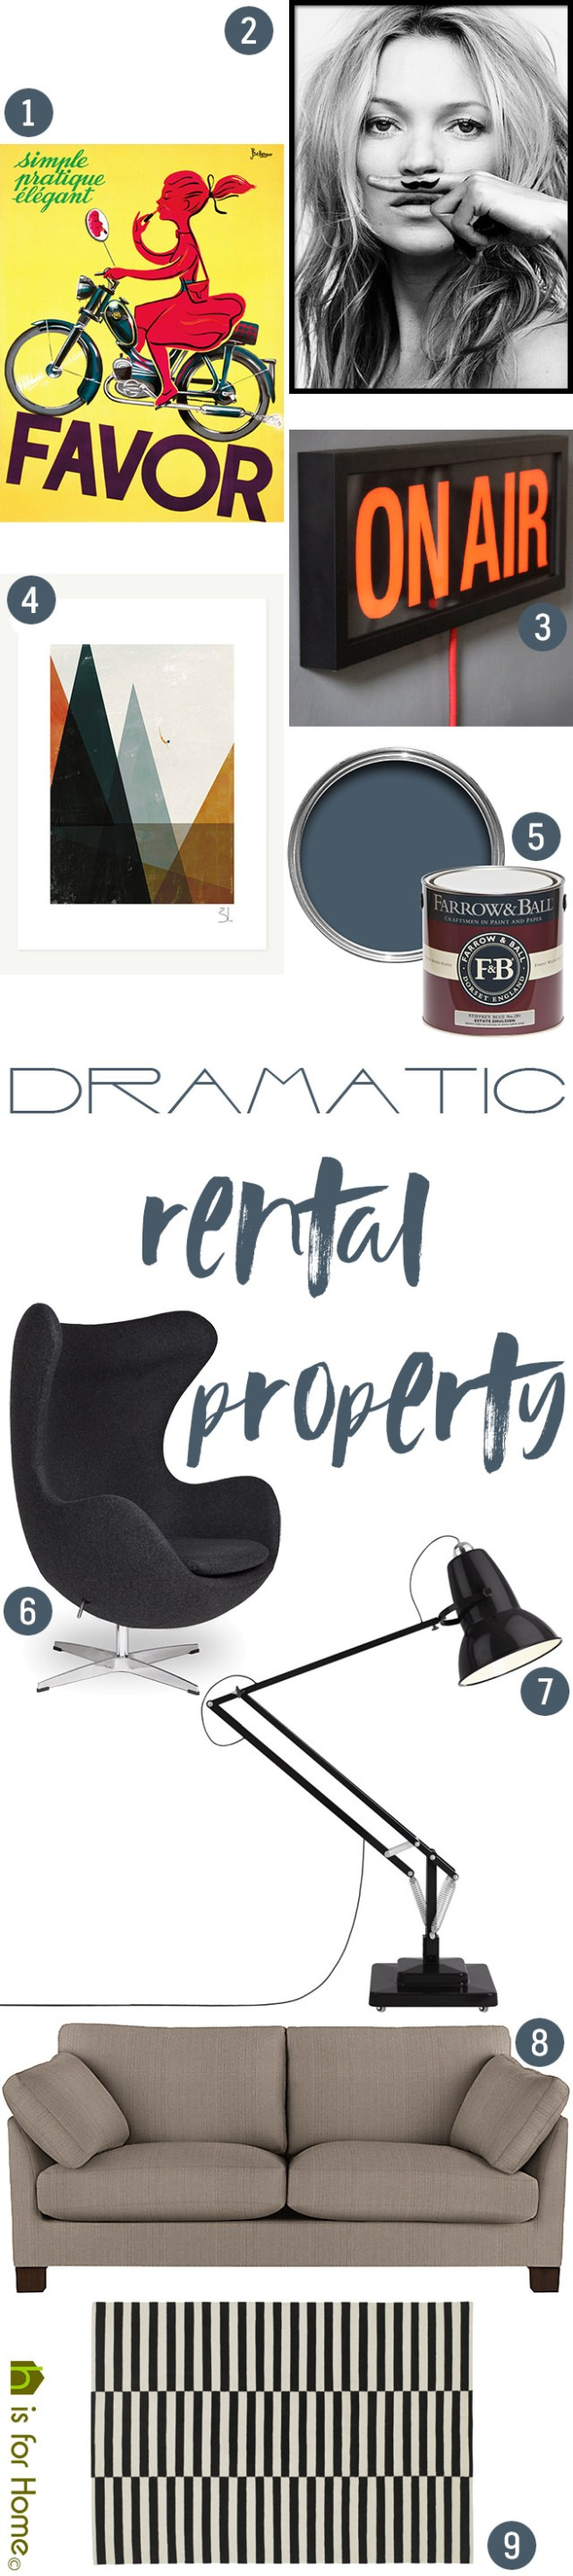 Get Their Look Dramatic Rental Property For Home